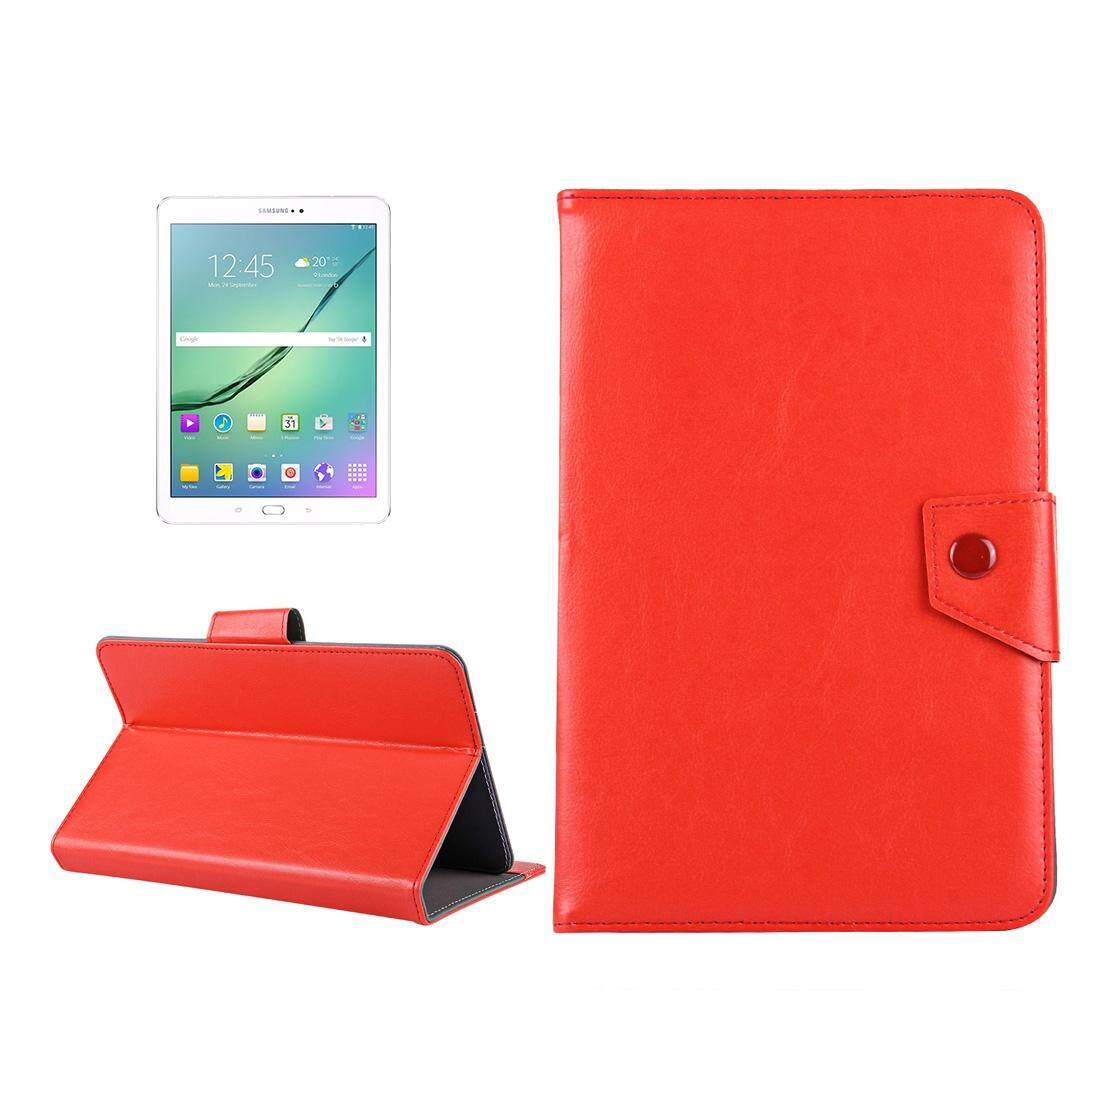 10 inch Tablets Leather Case Crazy Horse Texture Protective Case Shell with Holder for Asus ZenPad 10 Z300C, Huawei MediaPad M2 10.0-A01W, Cube IWORK10(Red) - intl